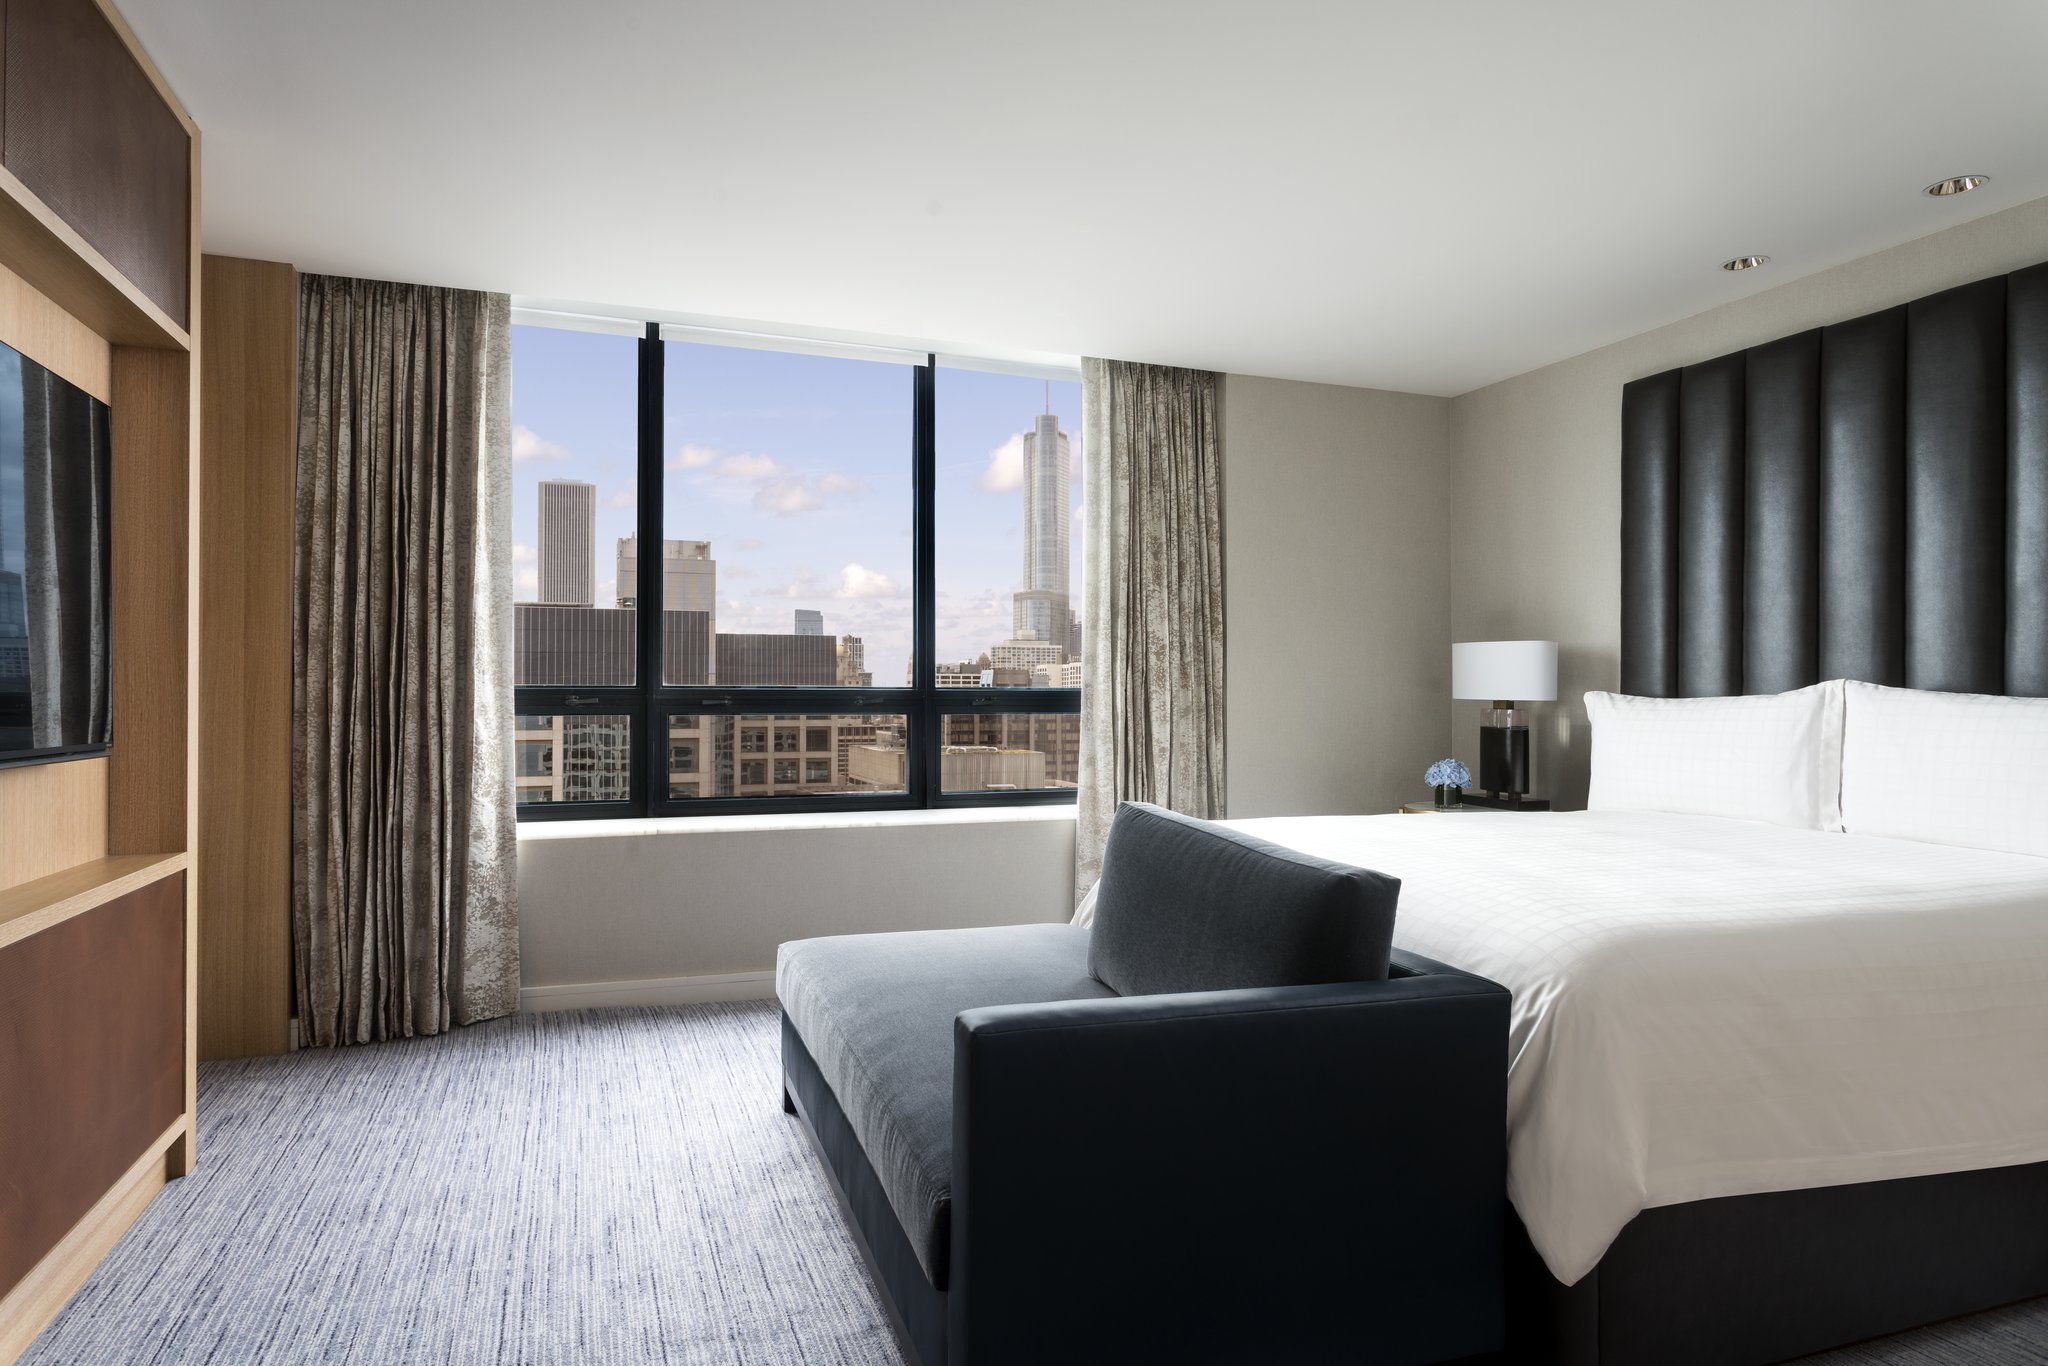 The ritz carlton chicago photos sagar b all destinations for H b bedrooms oldham